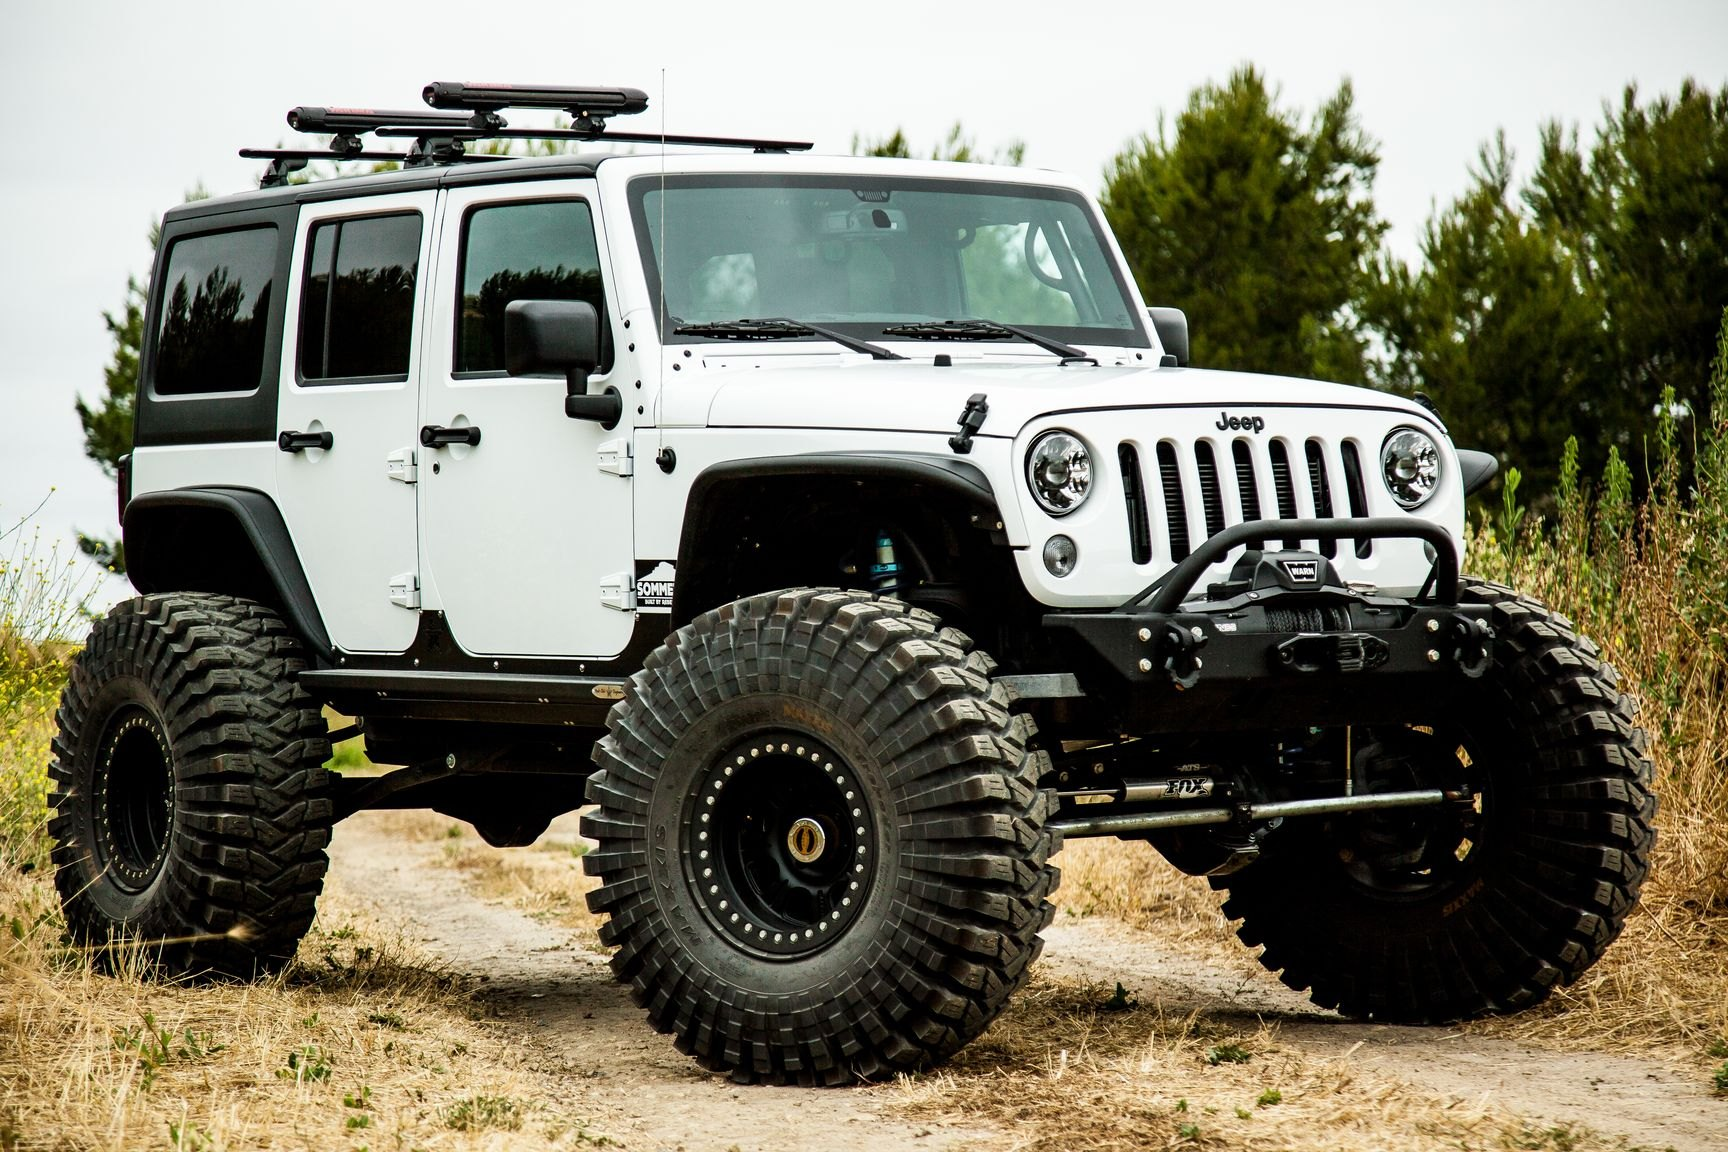 Jeeps Don t Get Better Prepared for f Roading Than this White